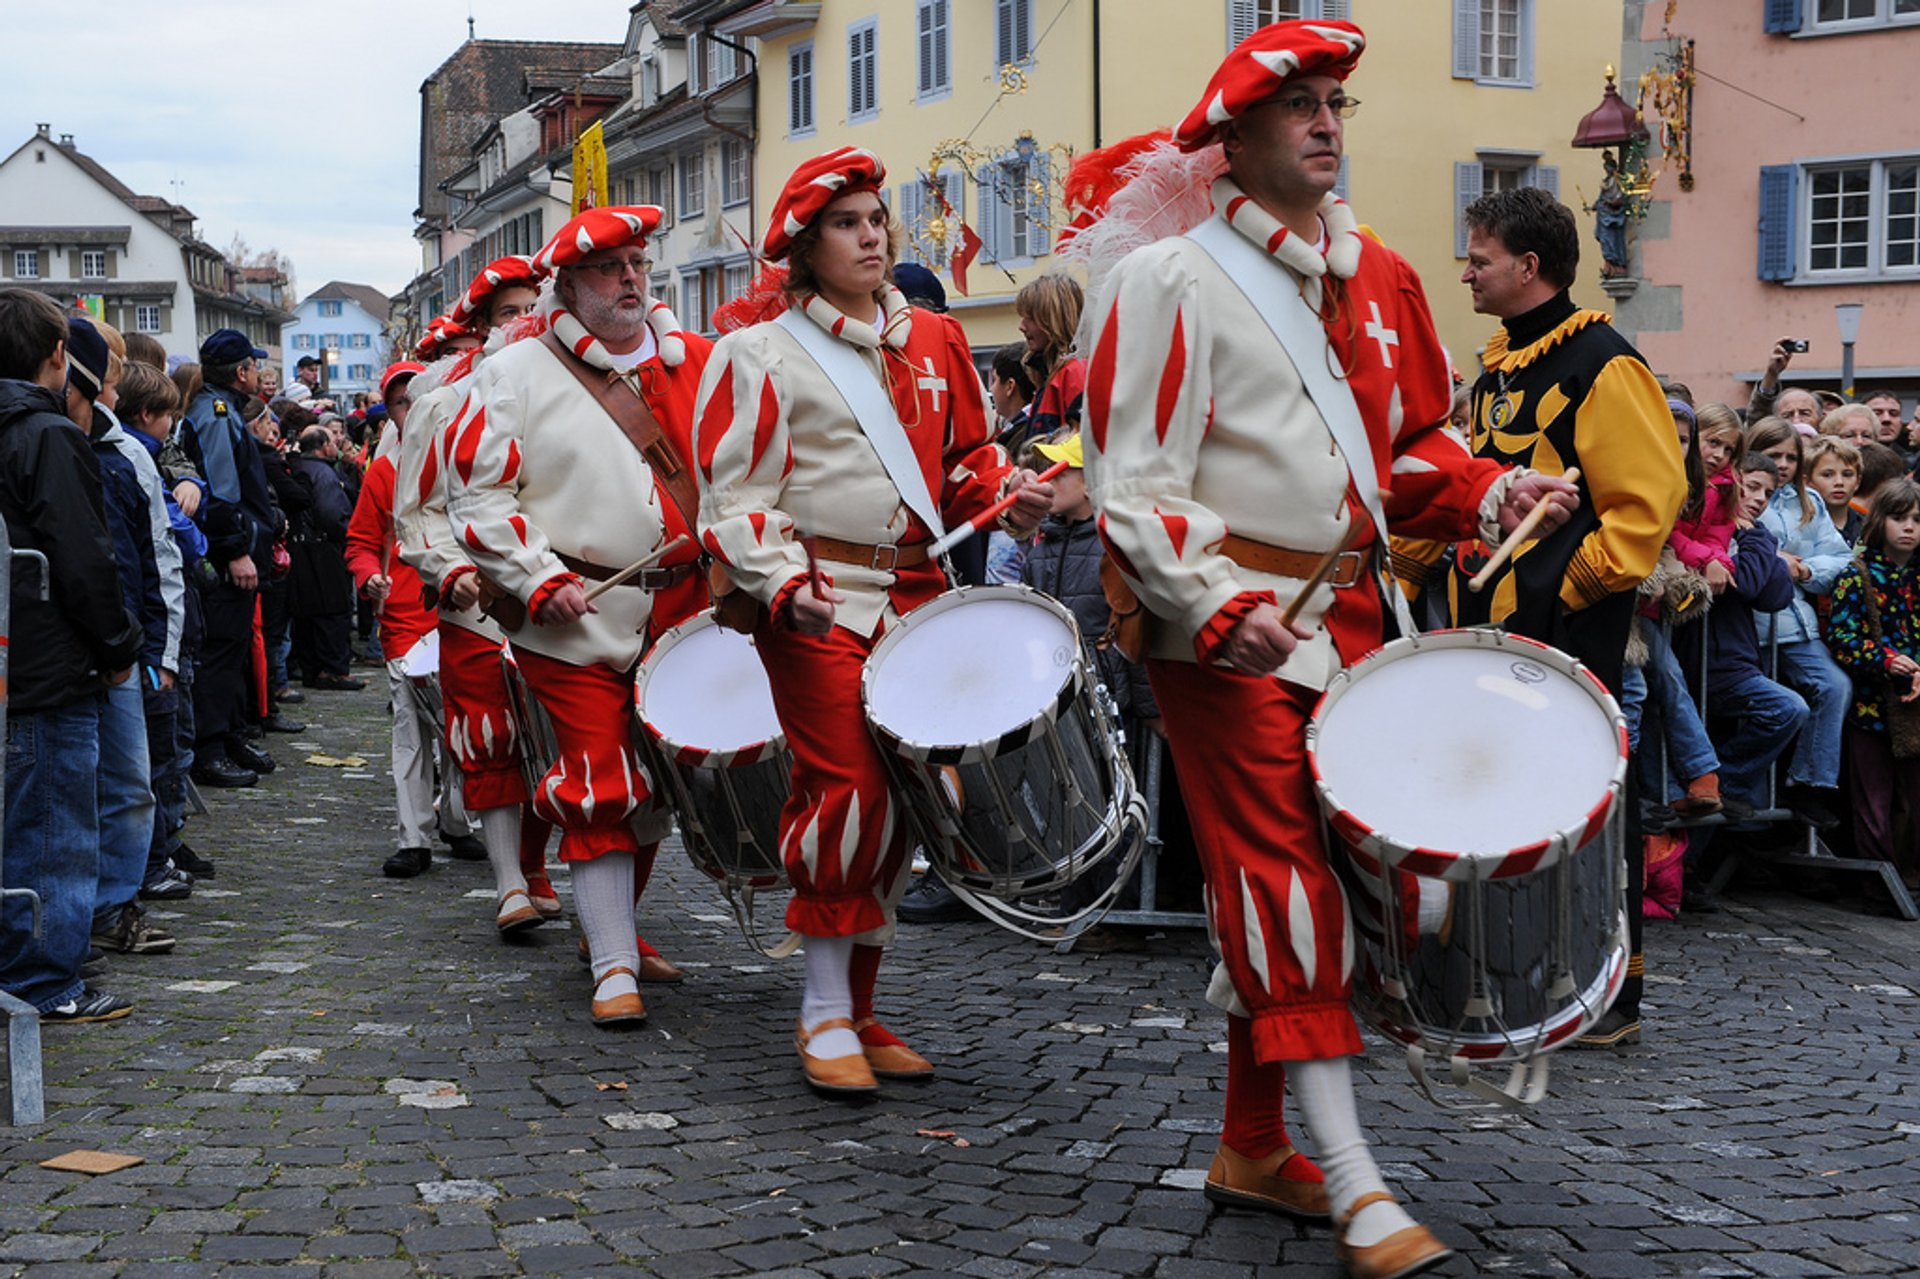 Martinstag: St. Martin Festival in Switzerland - Best Season 2019